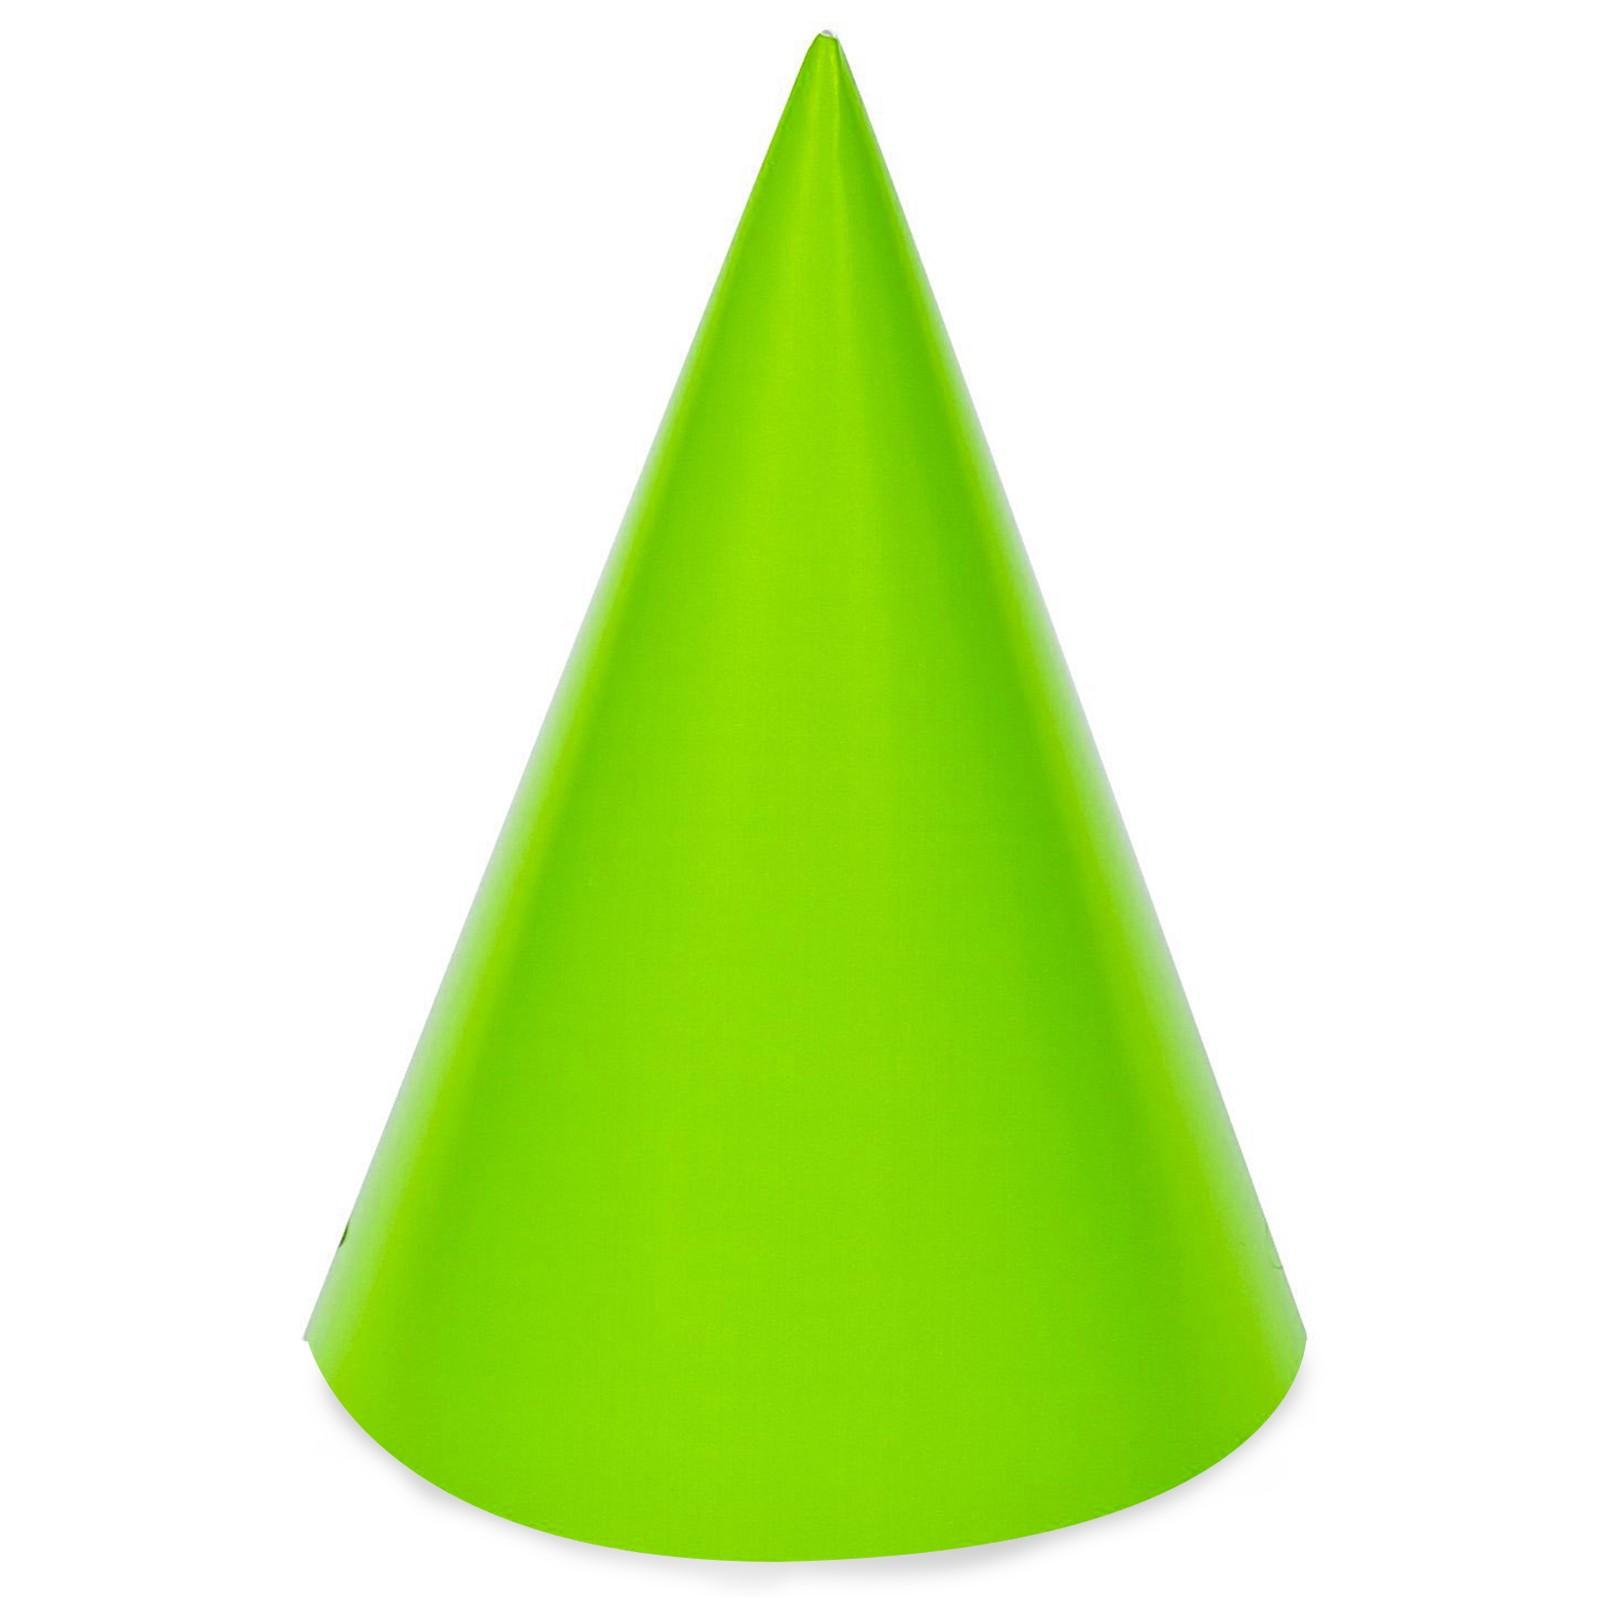 High Resolution Wallpaper | Cone 1600x1600 px